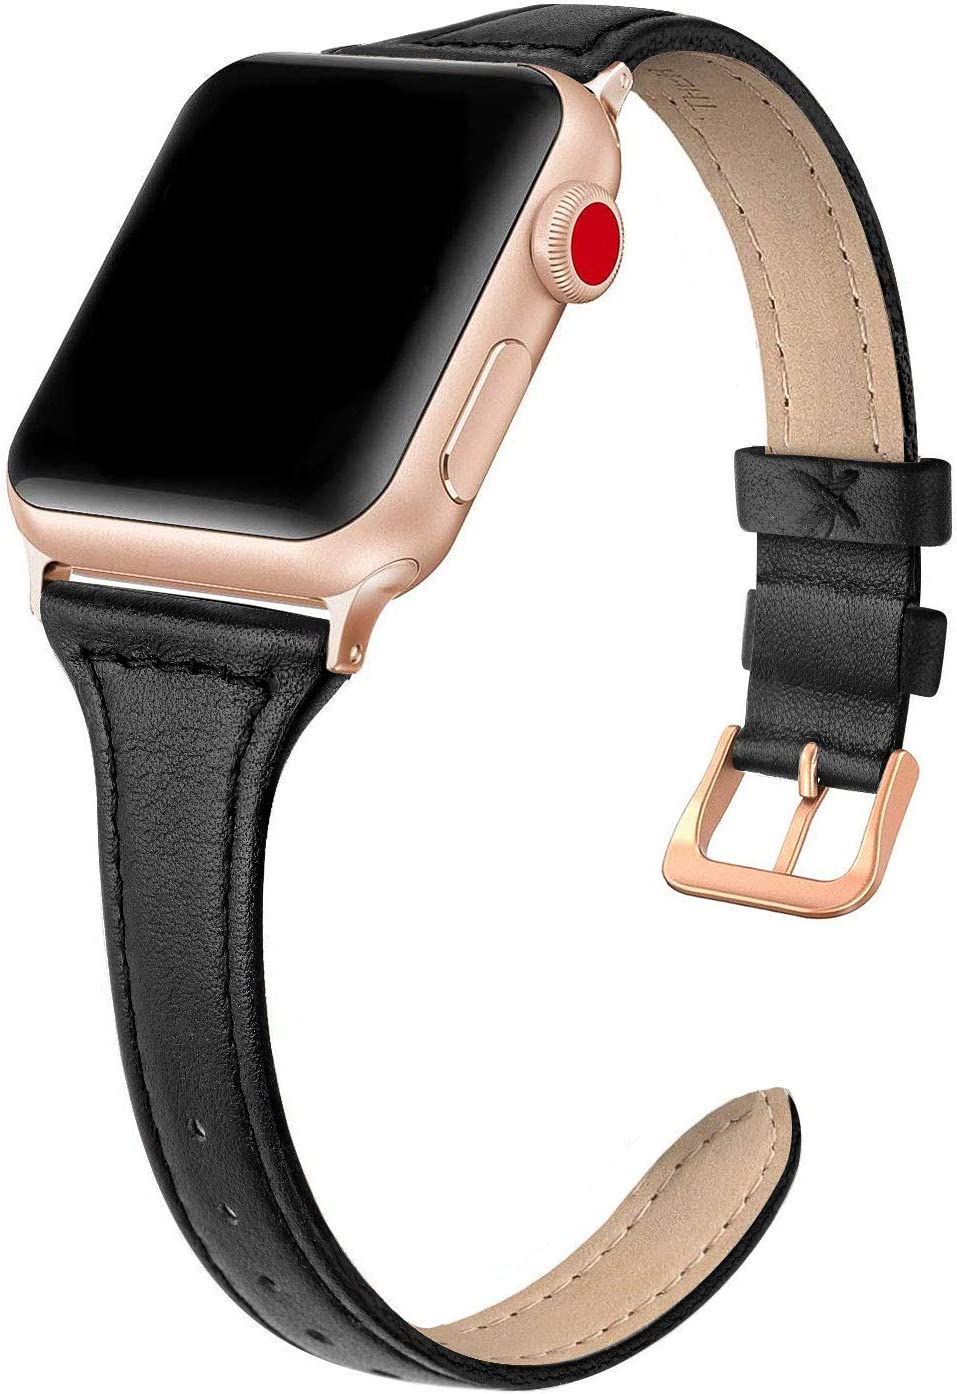 SWEES Leather Band Compatible for iWatch 38mm 40mm, Slim Thin Dressy Genuine Leather Strap with Rose Gold Buckle Compatible for iWatch Series 6, 5, 4, 3, 2, 1, SE, Sport & Edition Women, Classic Black